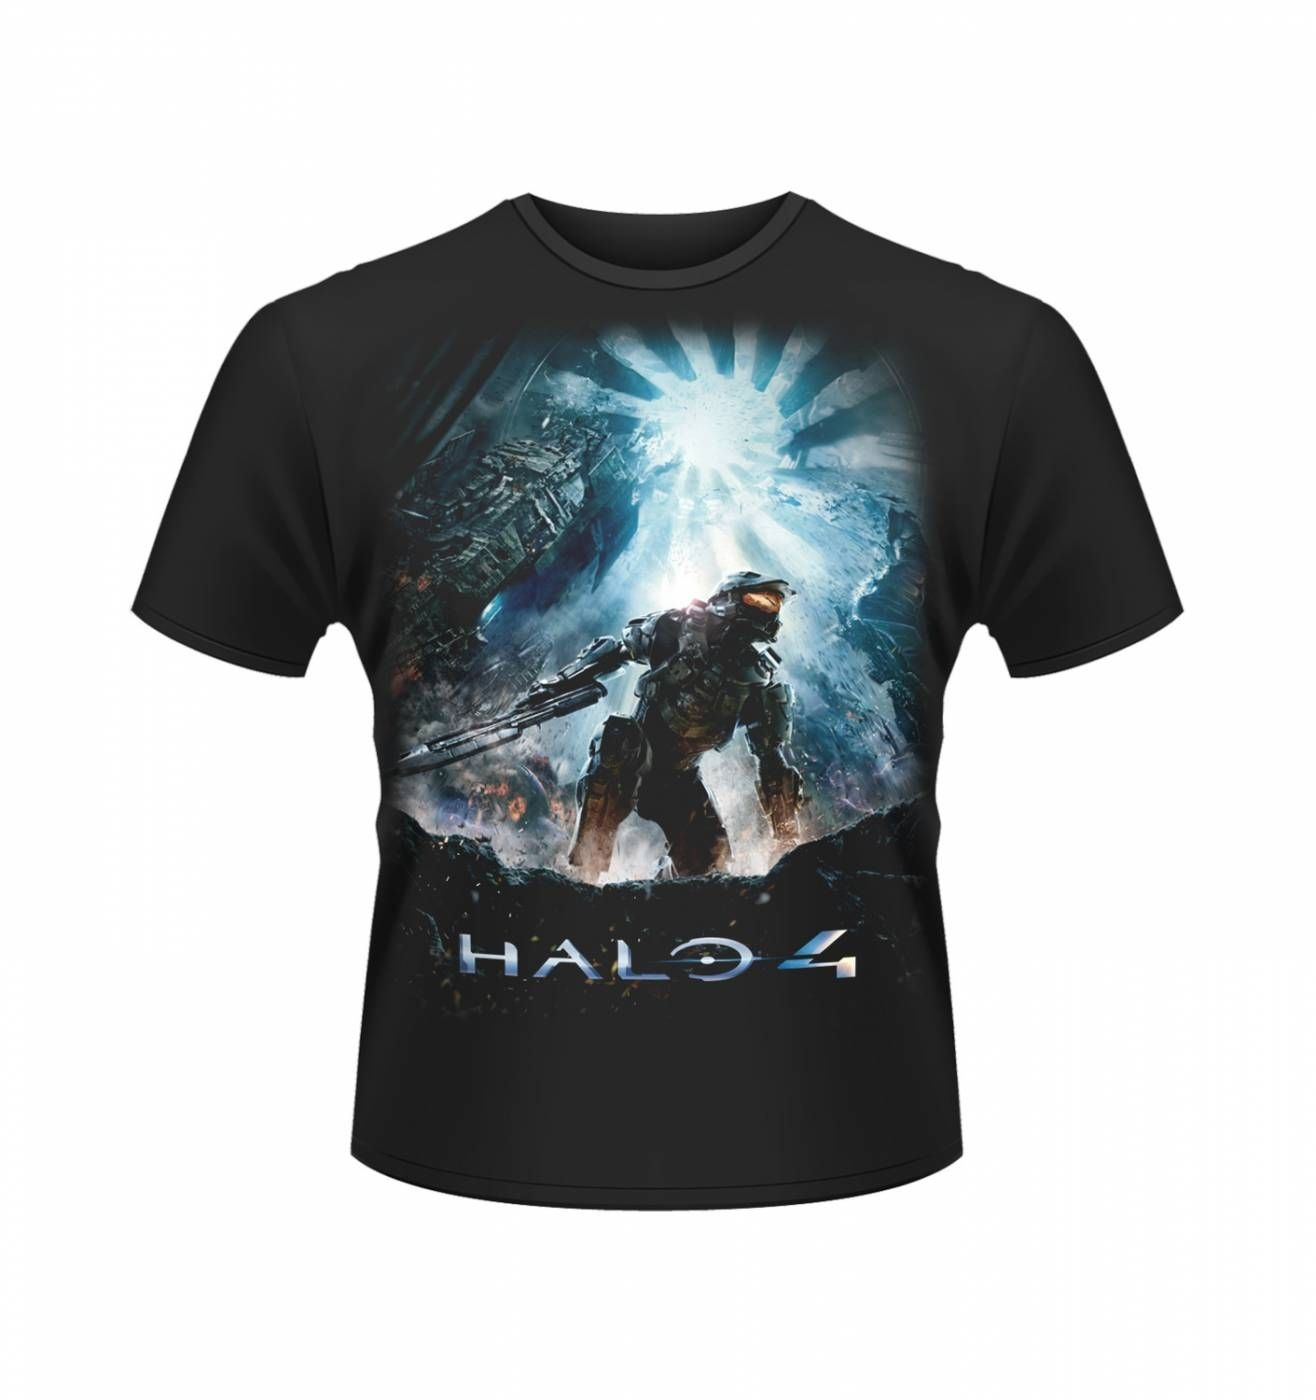 OFFICIAL Halo 4 Saviour t-shirt